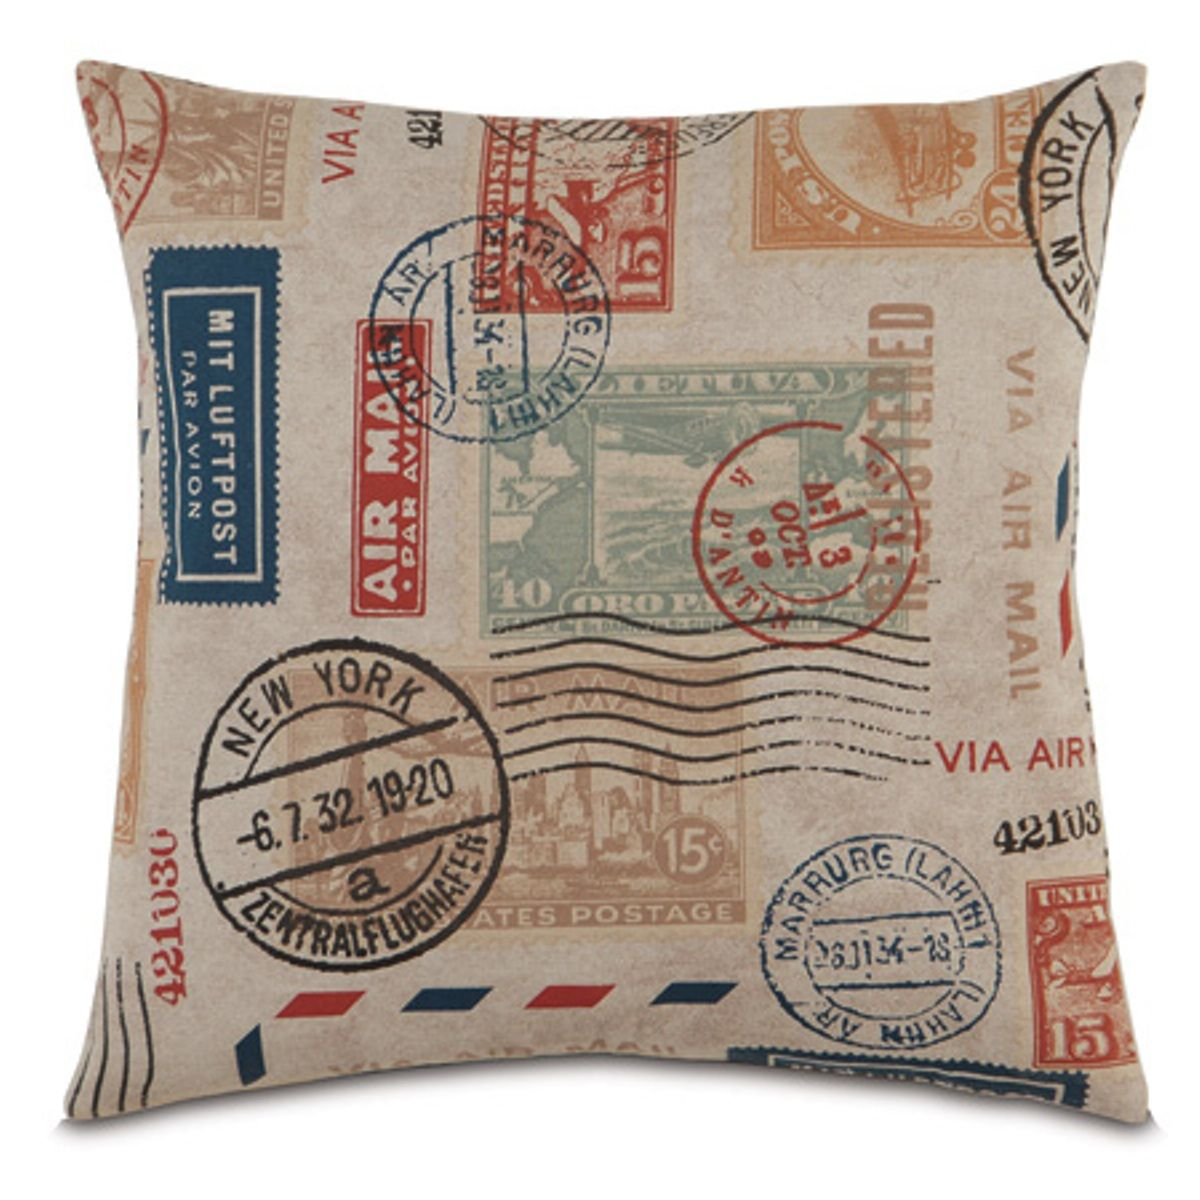 Passport Bedding Accessories Passport Stamp Pillow Travel Themed Room Travel Room